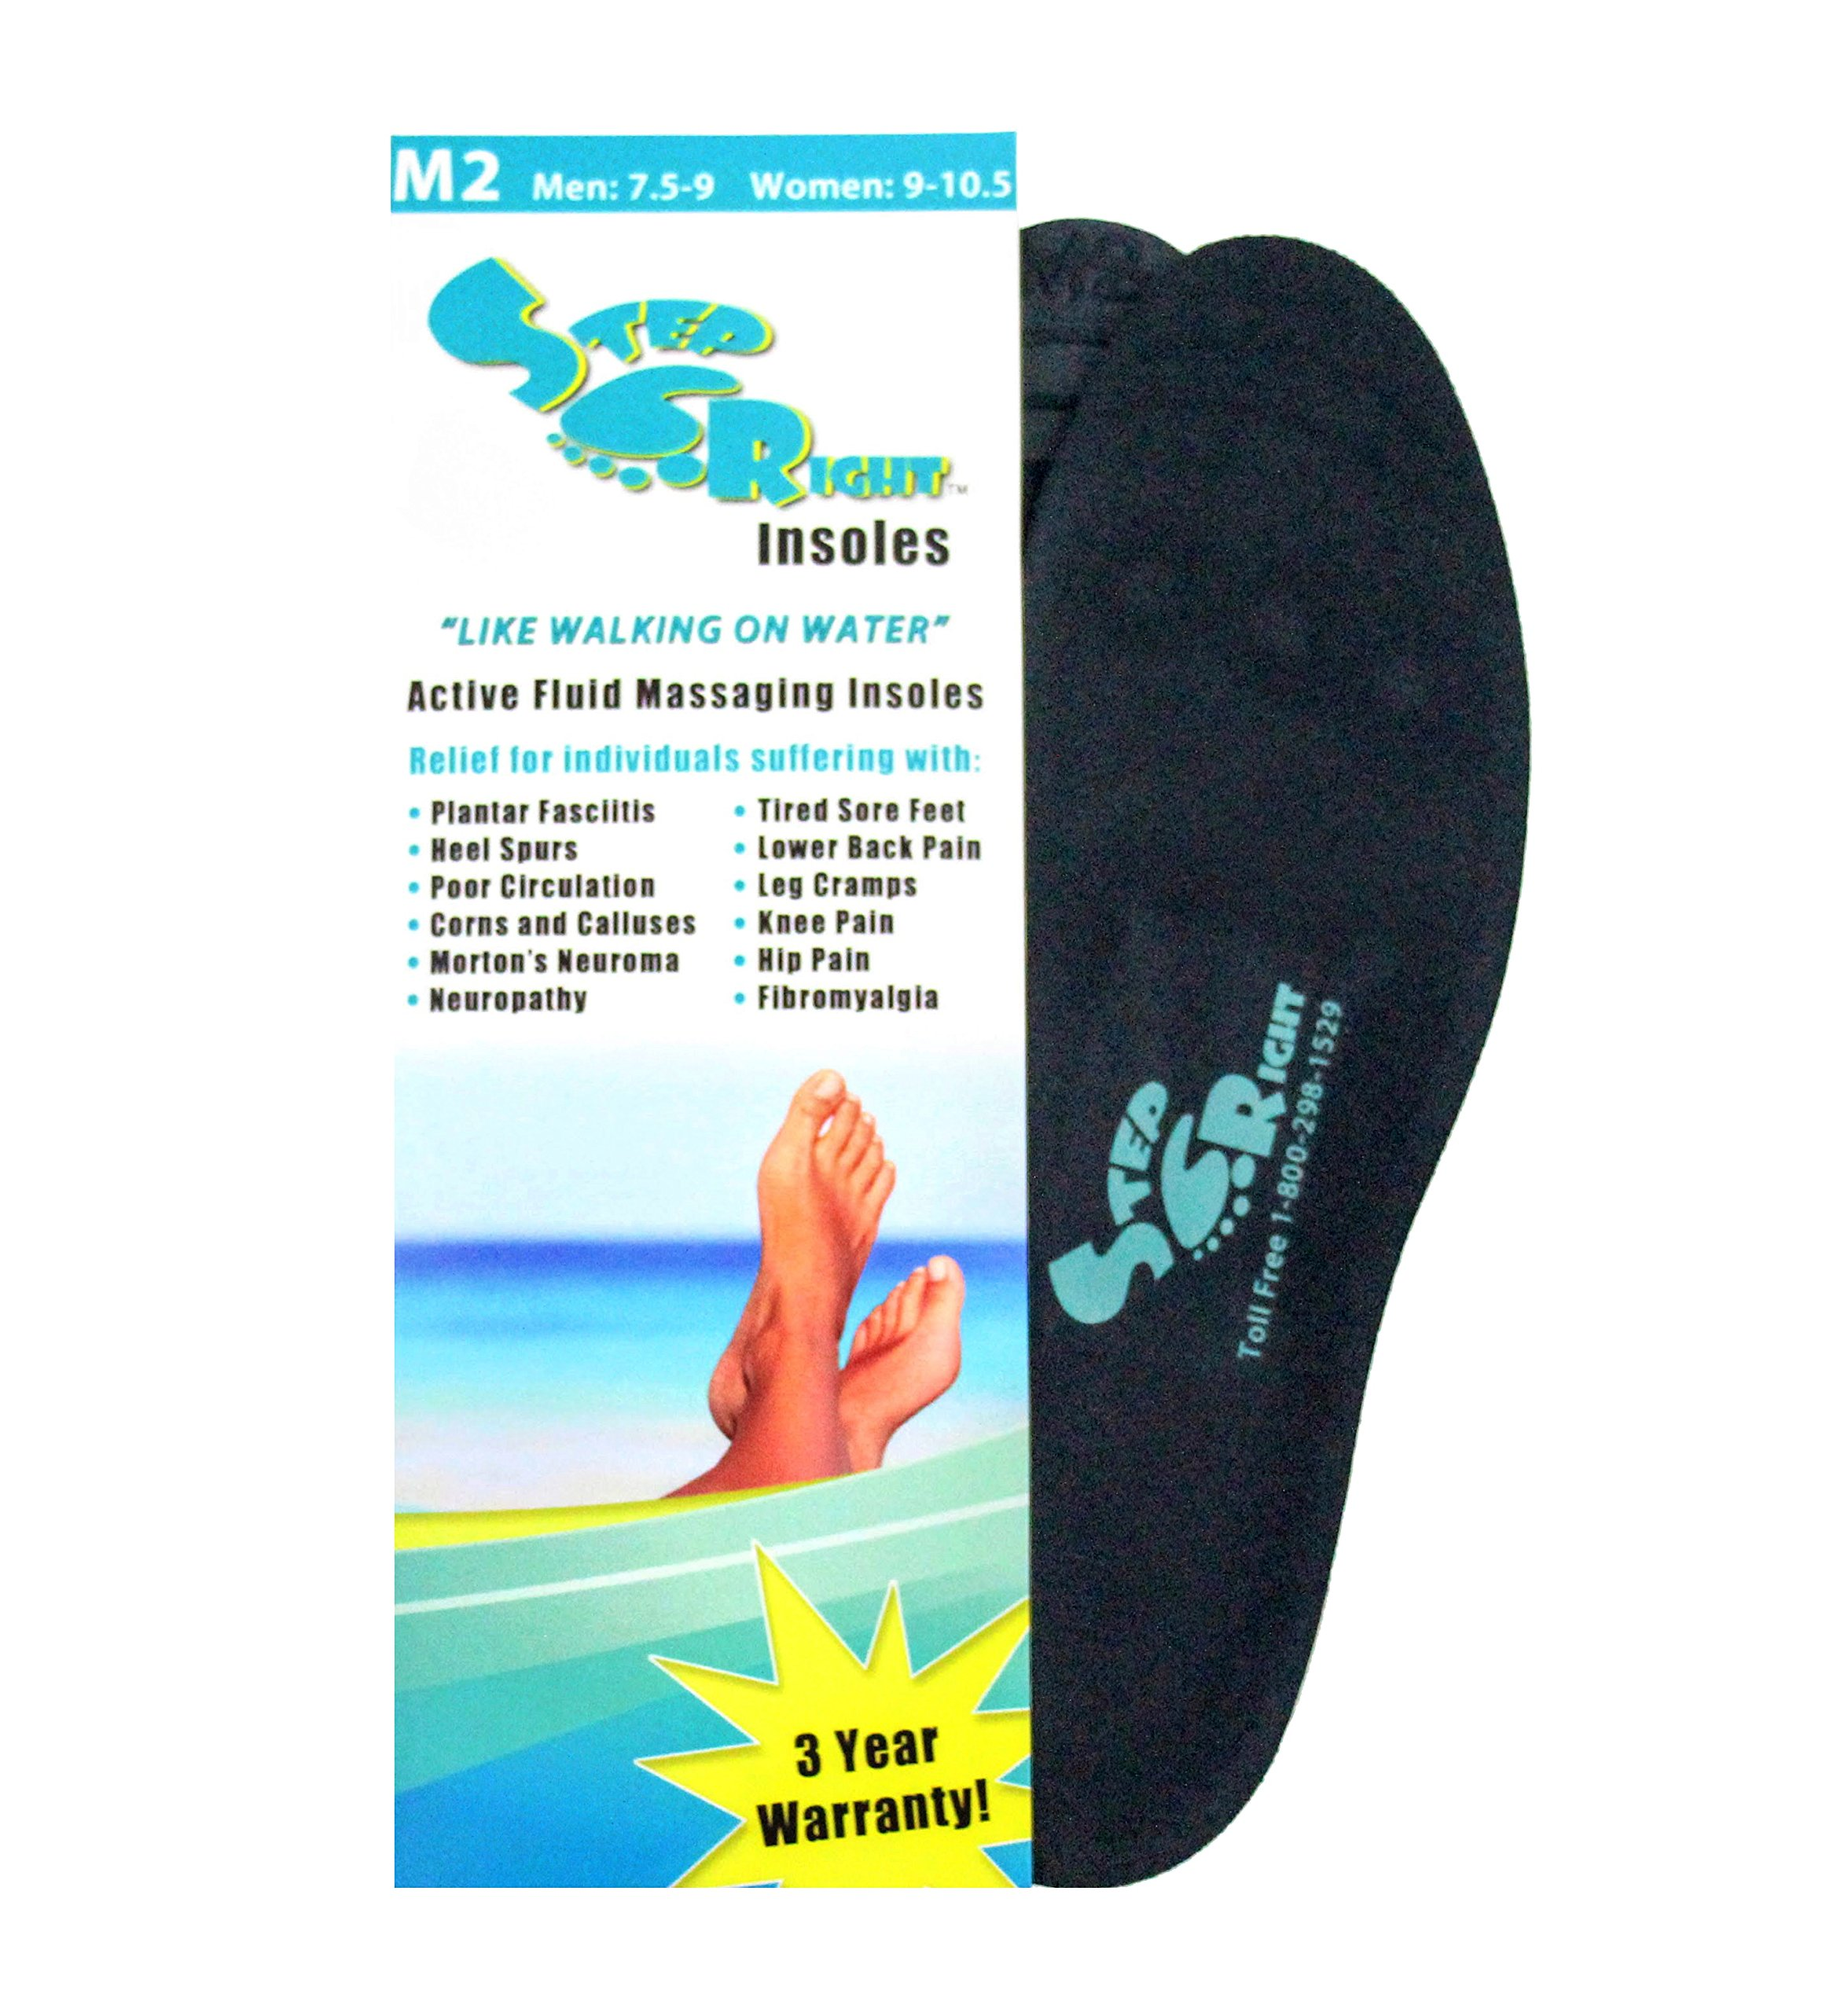 Step Right Insoles Relieves -Plantar Fasciitis- Neuropathy- Poor Circulation- Foot Pain and Heel Spurs (M2 Womens 9-10.5 : Mens 7.5-9) by Step Right